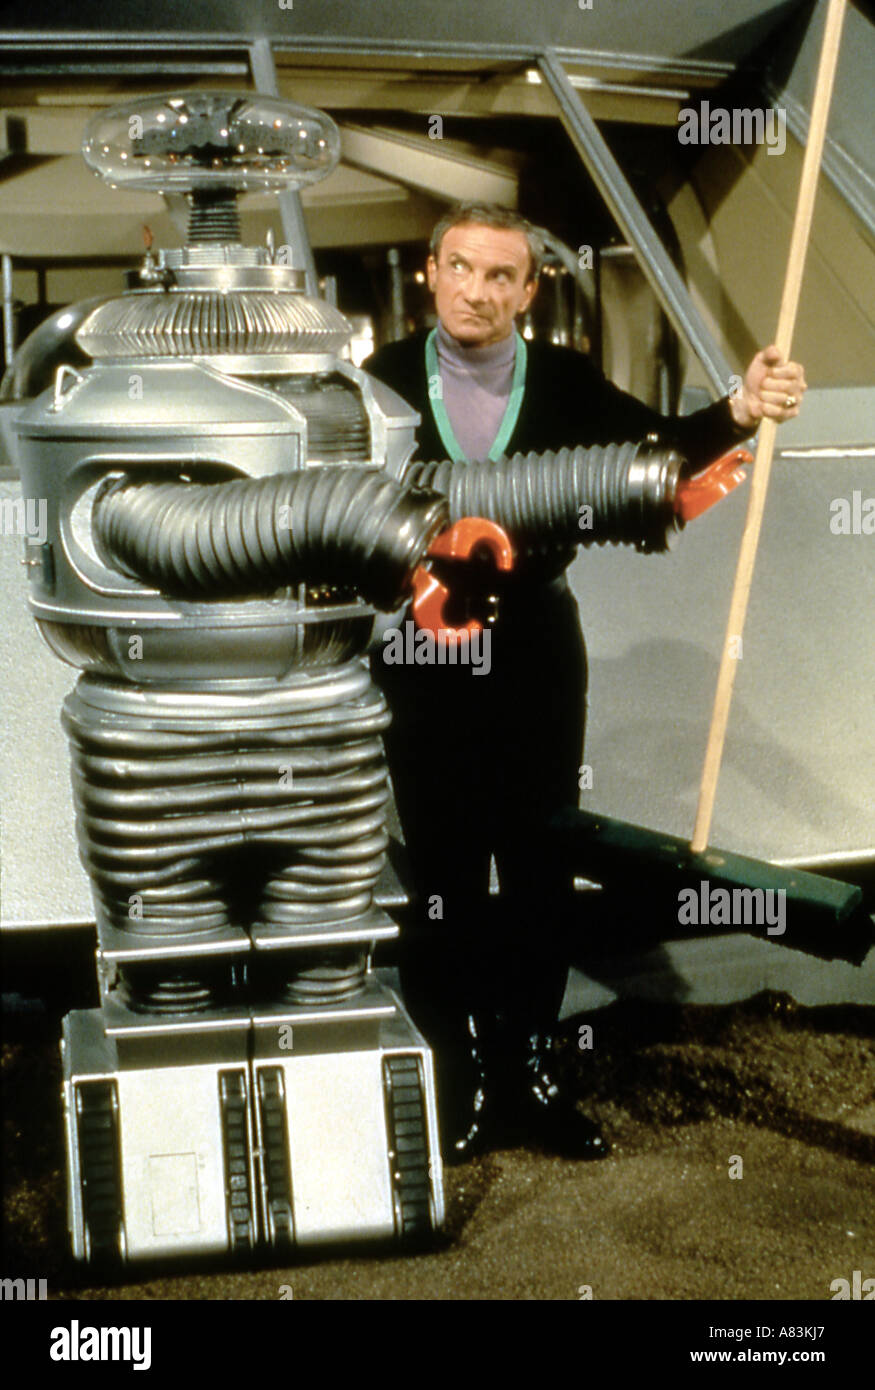 LOST IN SPACE US TV series 1965 to 1968 with Jonathan Harris - Stock Image